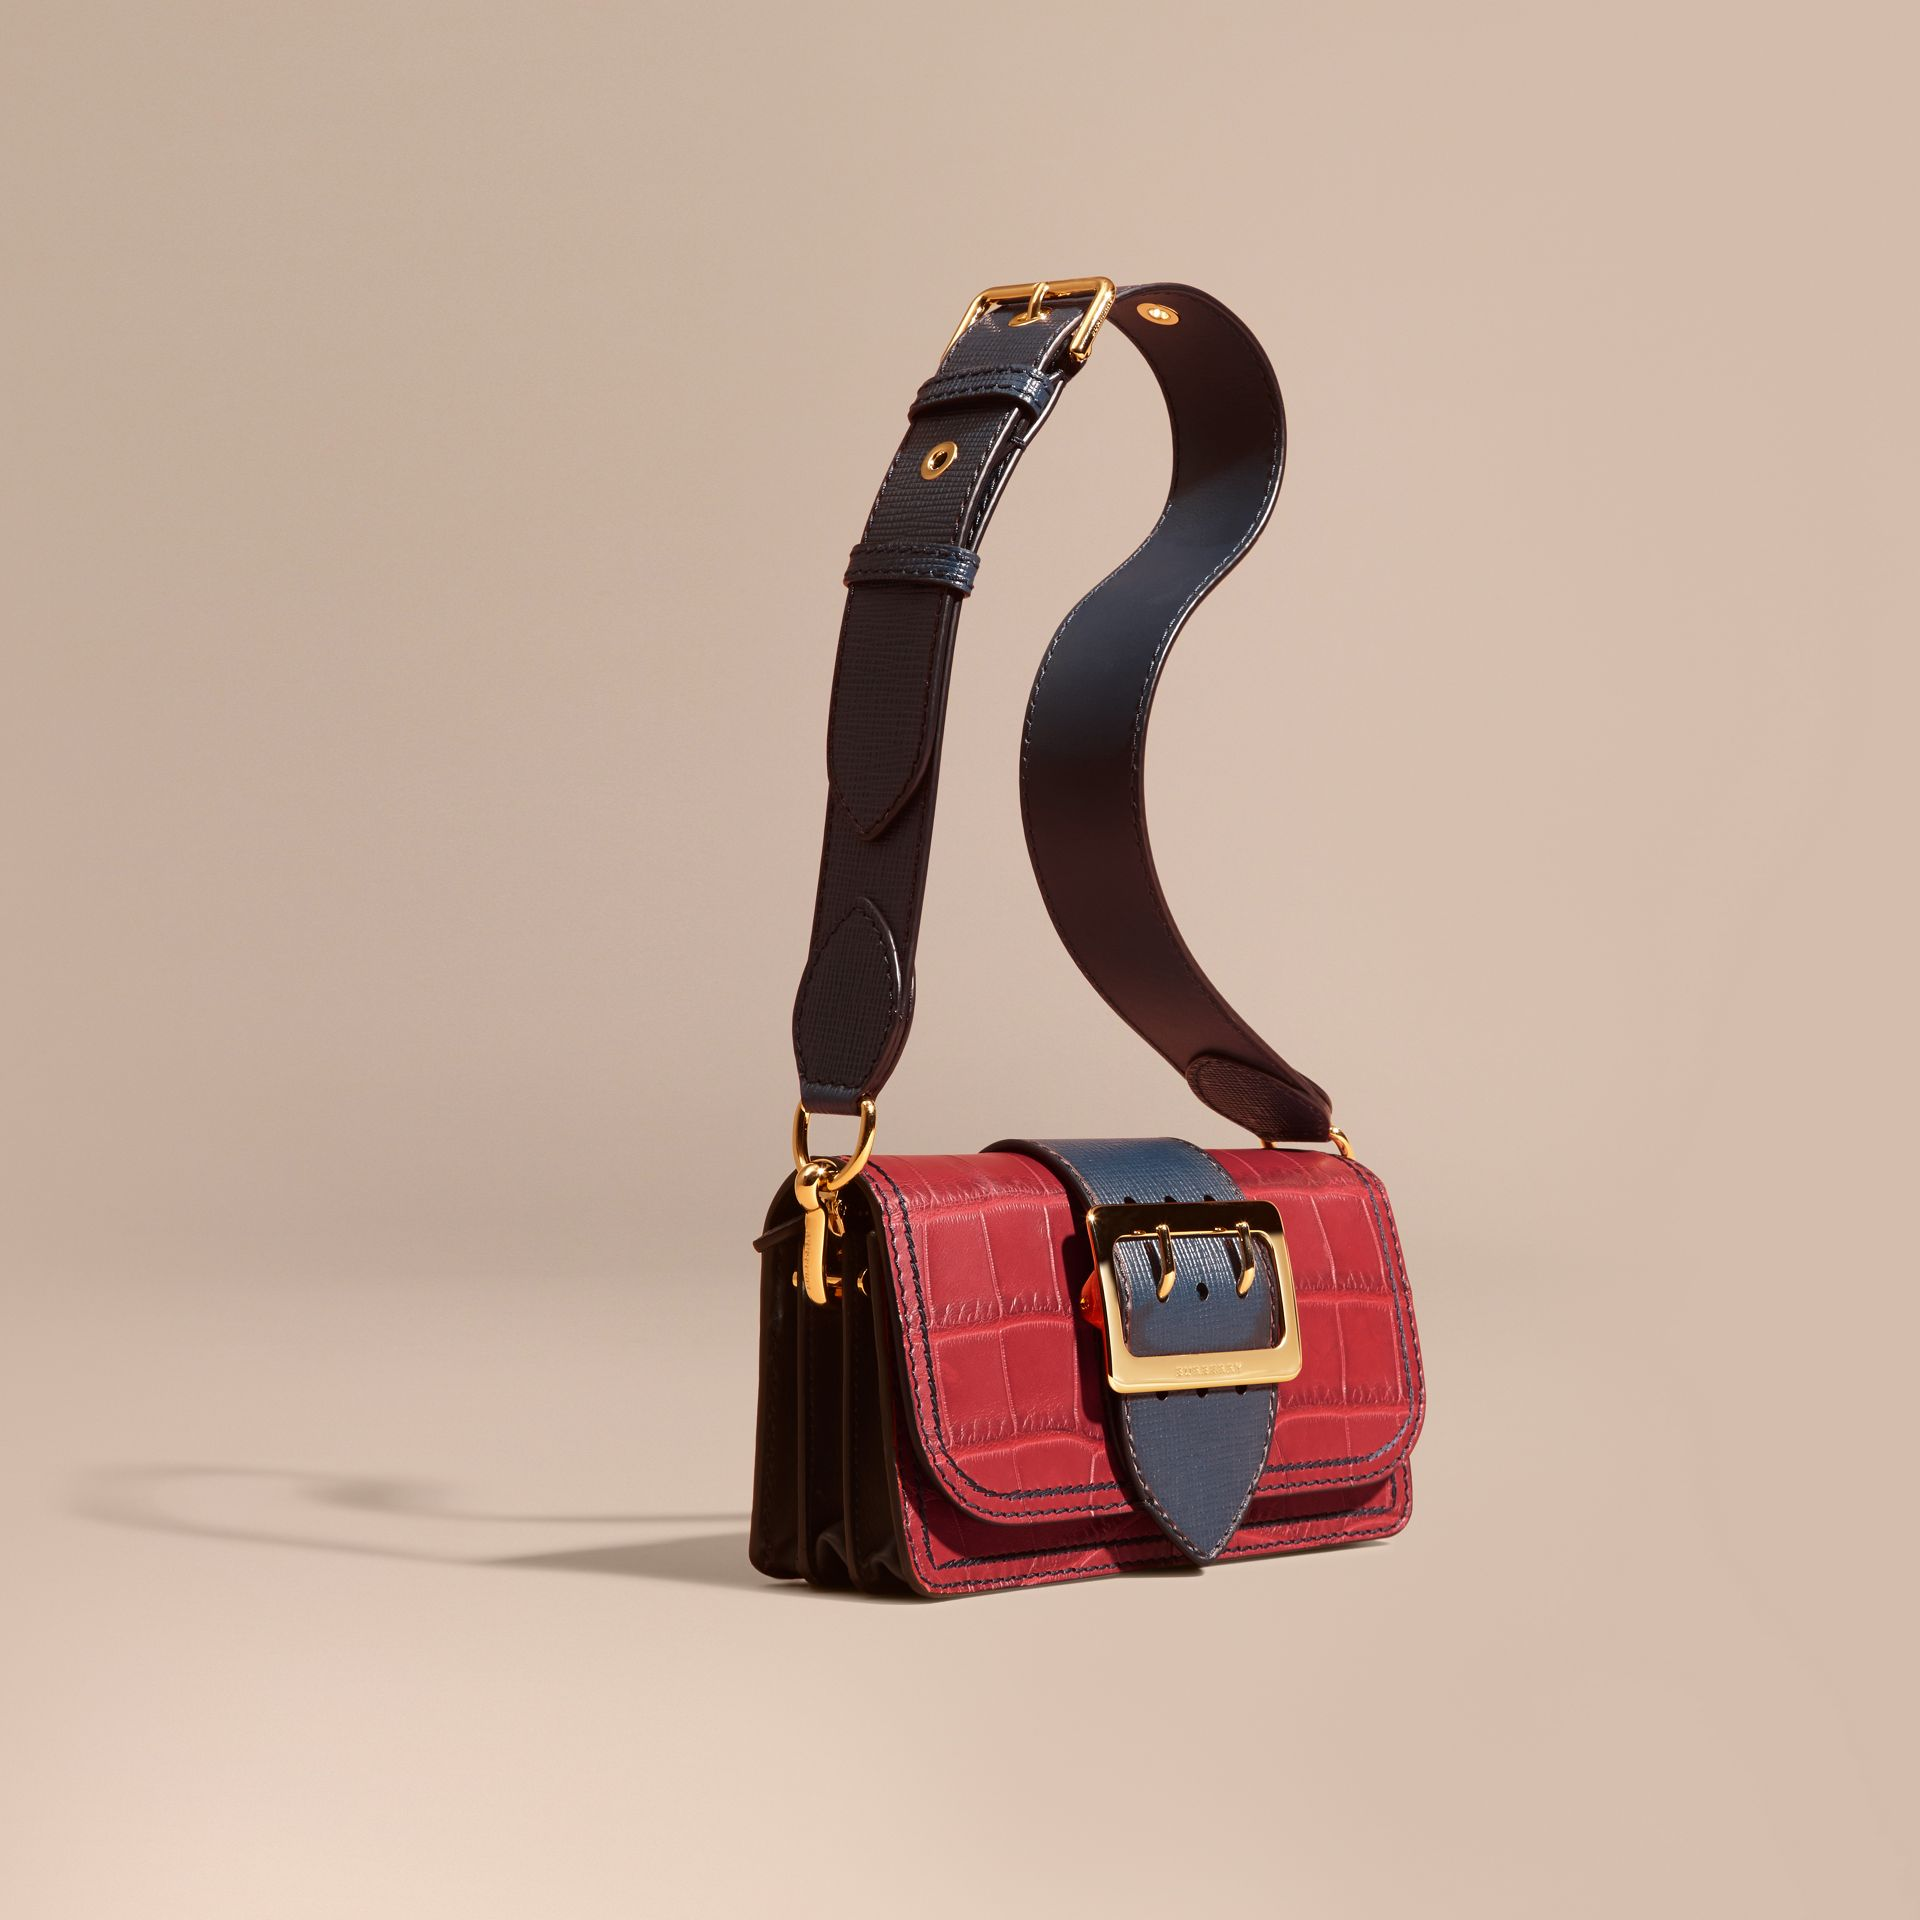 Garnet red/sapphire The Small Buckle Bag in Alligator and Leather Garnet Red/sapphire - gallery image 1